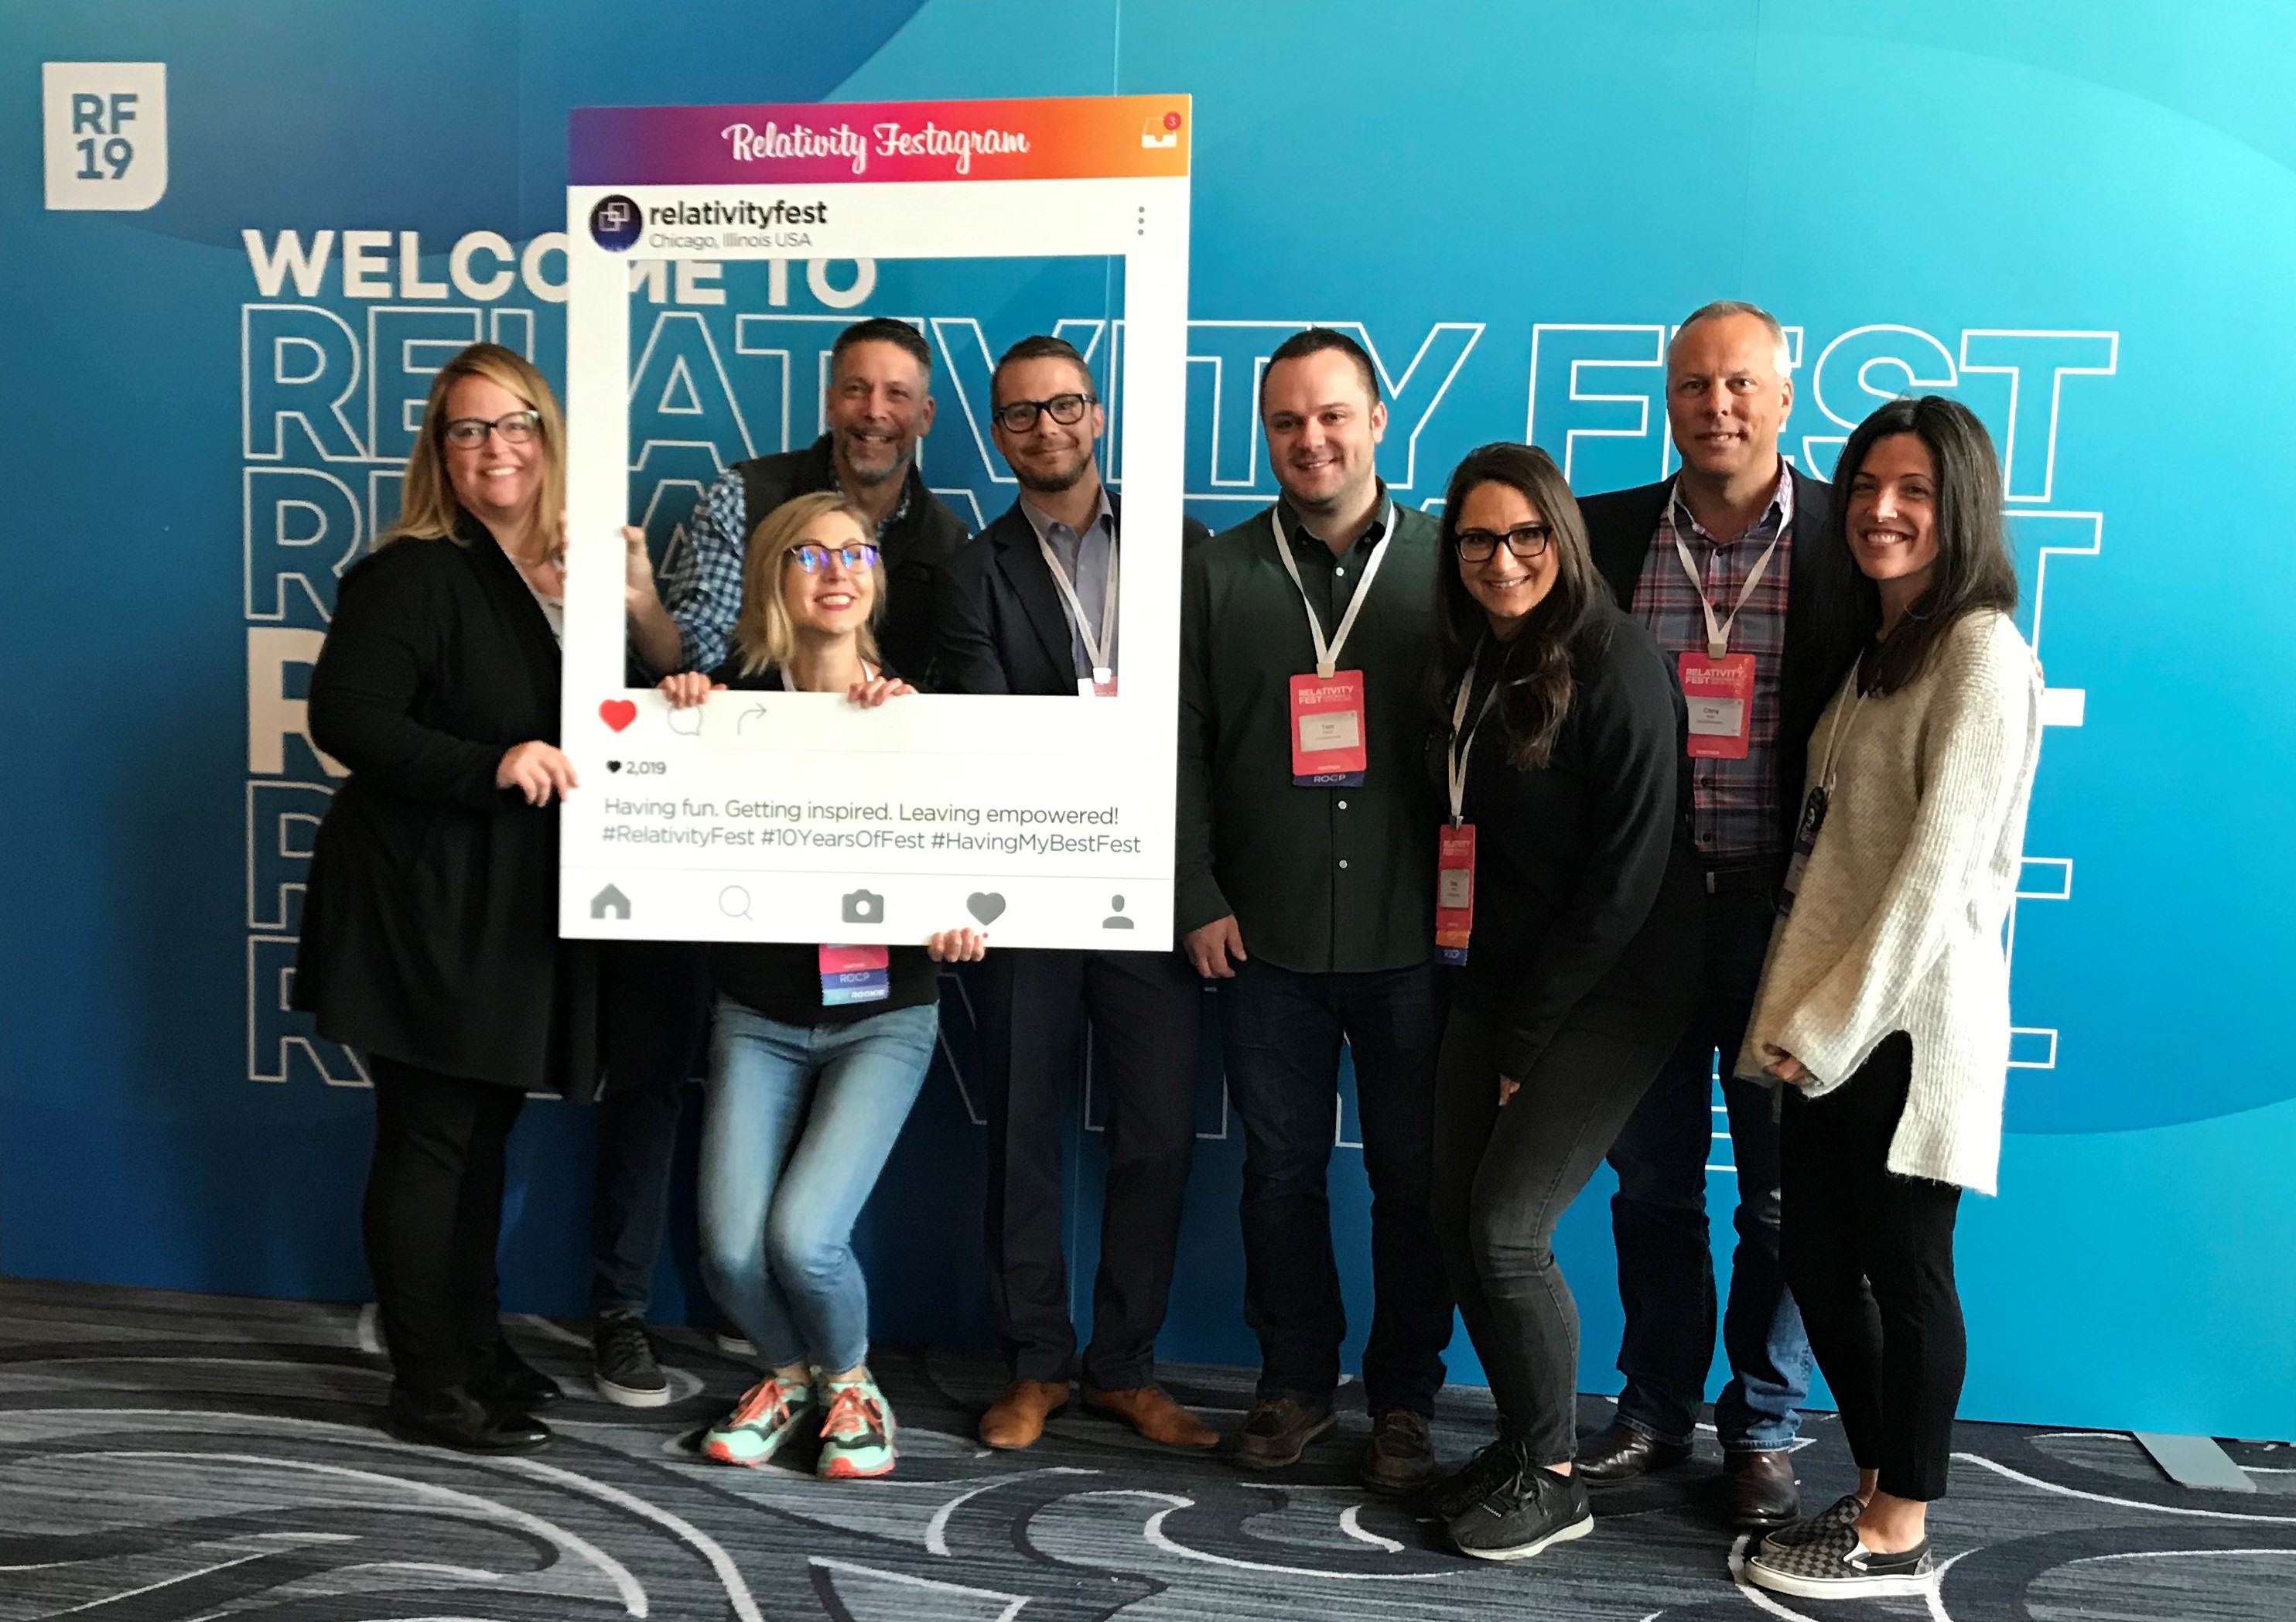 Members of JND eDiscovery team pose for photo at Relativity Fest 2019 marquee.